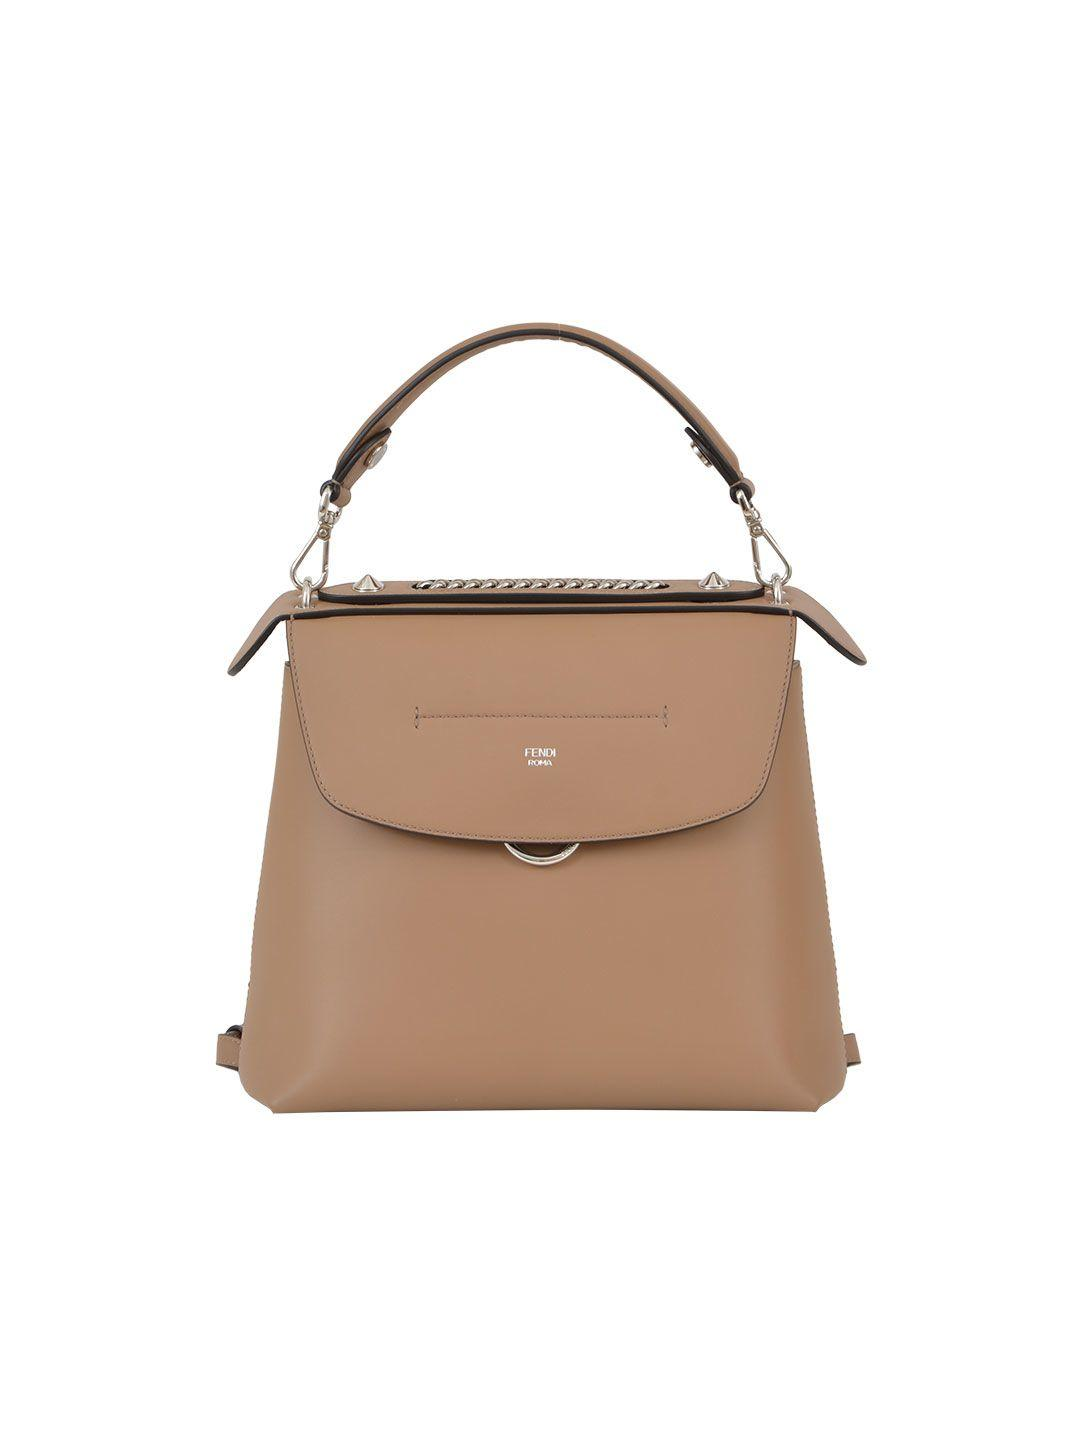 94e323f9d0 Fendi Back To School Large Leather Backpack Crossbody Bag In Sand ...